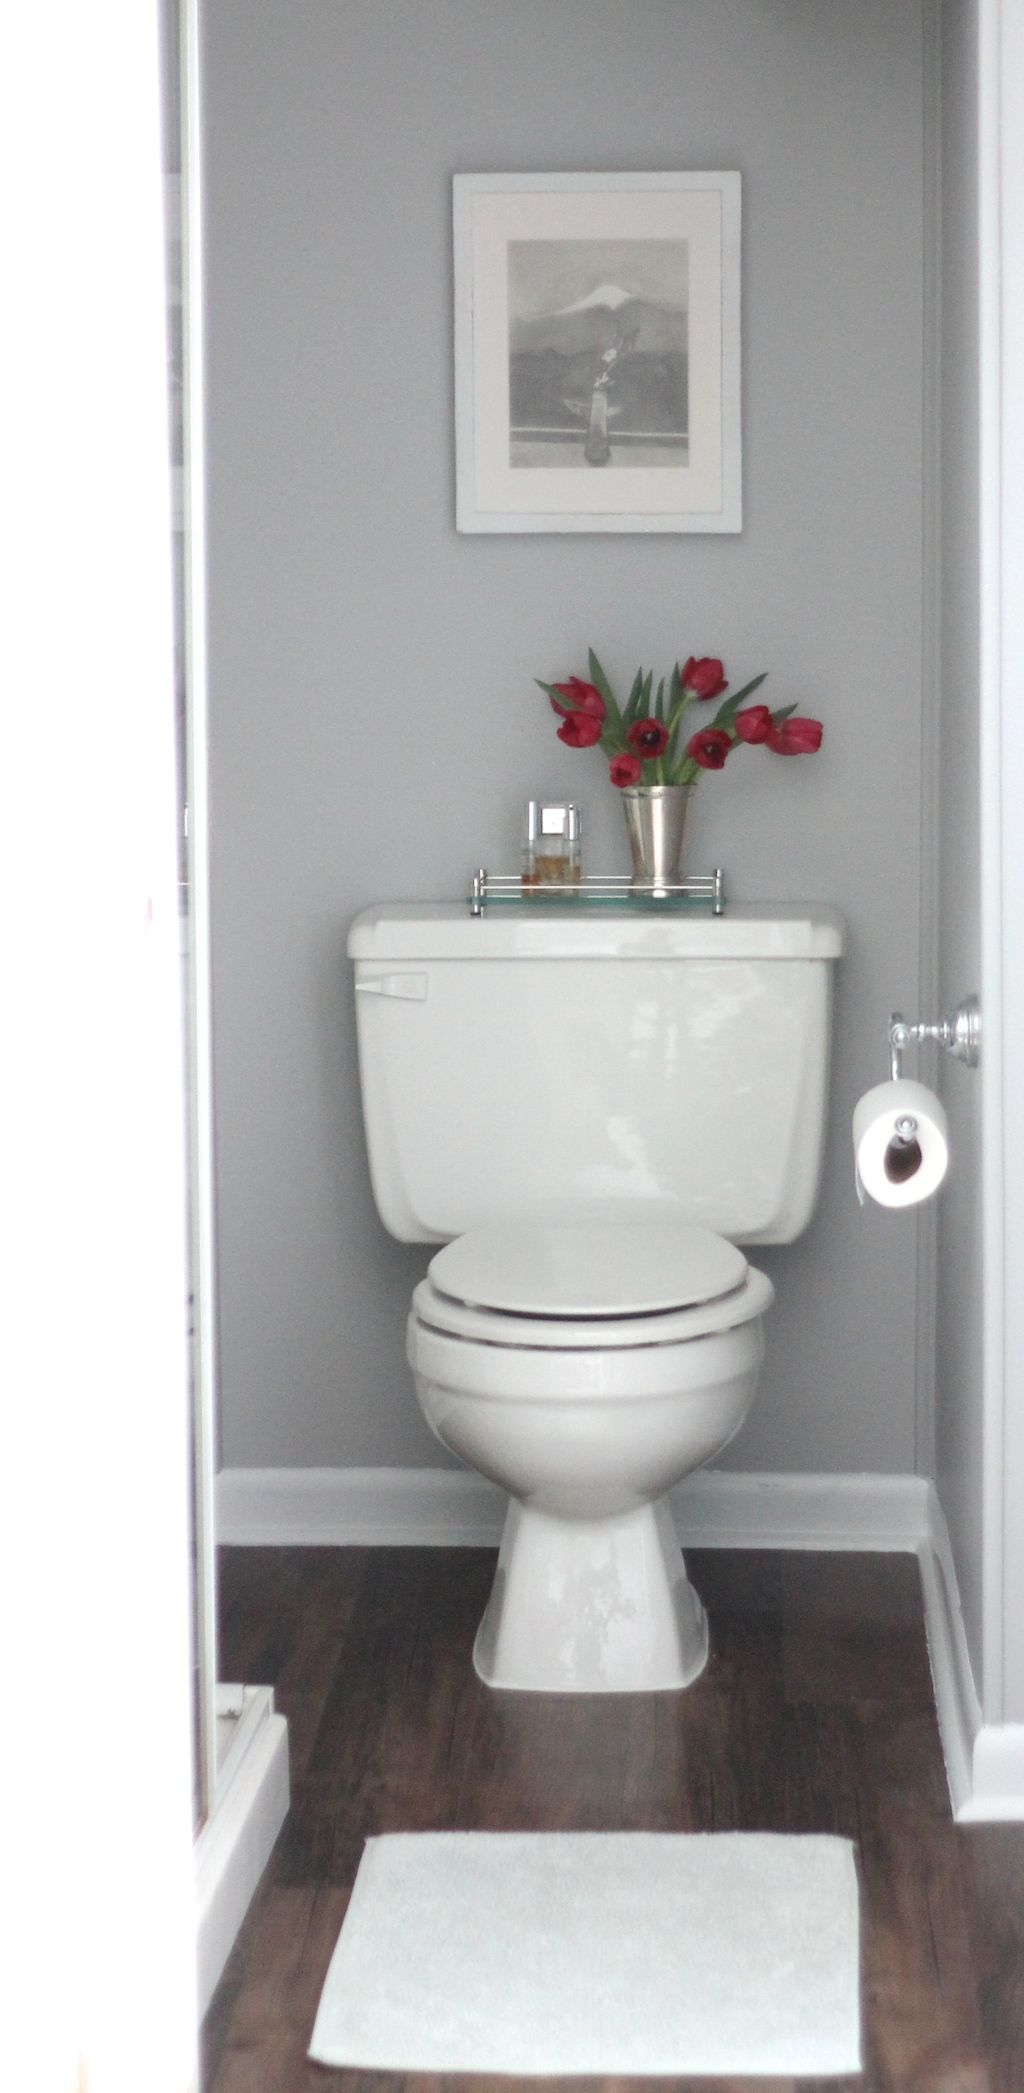 Renovating Fixing Decorating Painting Ideas: Easy & Inexpensive Bathroom Remodel